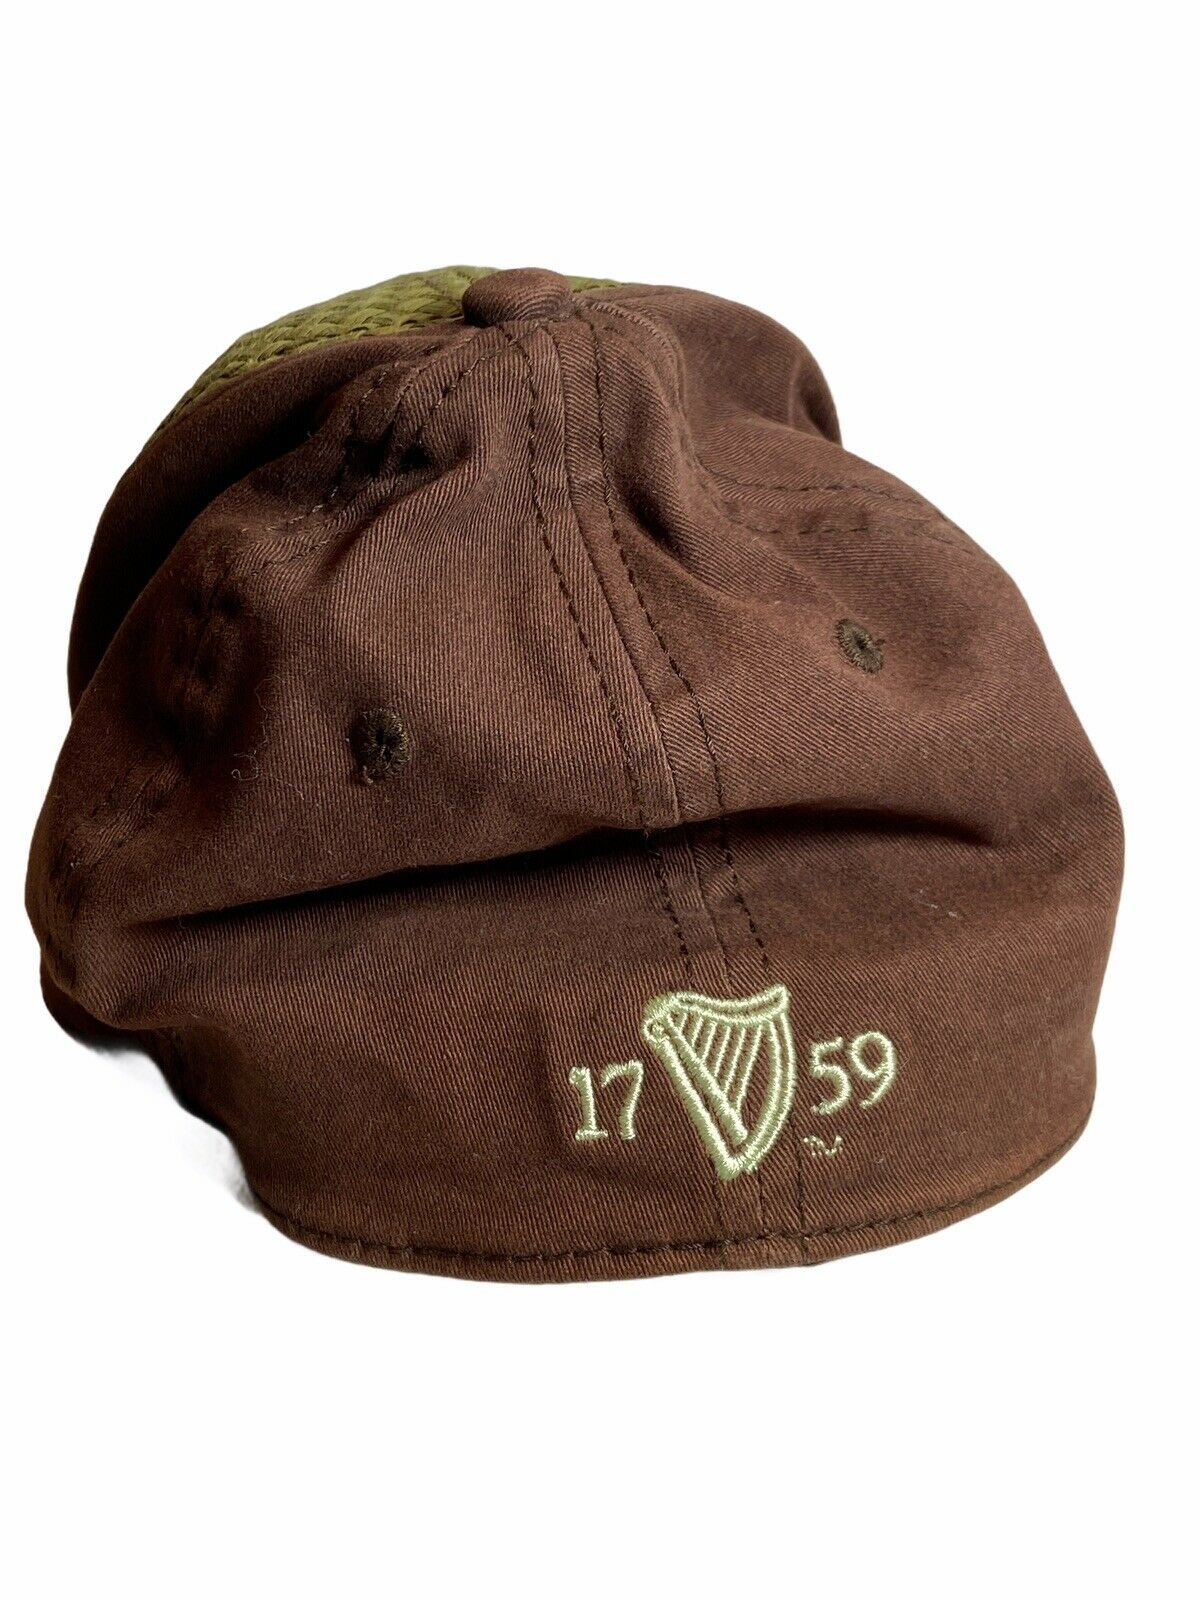 Guinness Beer Woven Straw Cap Hat OS - image 3